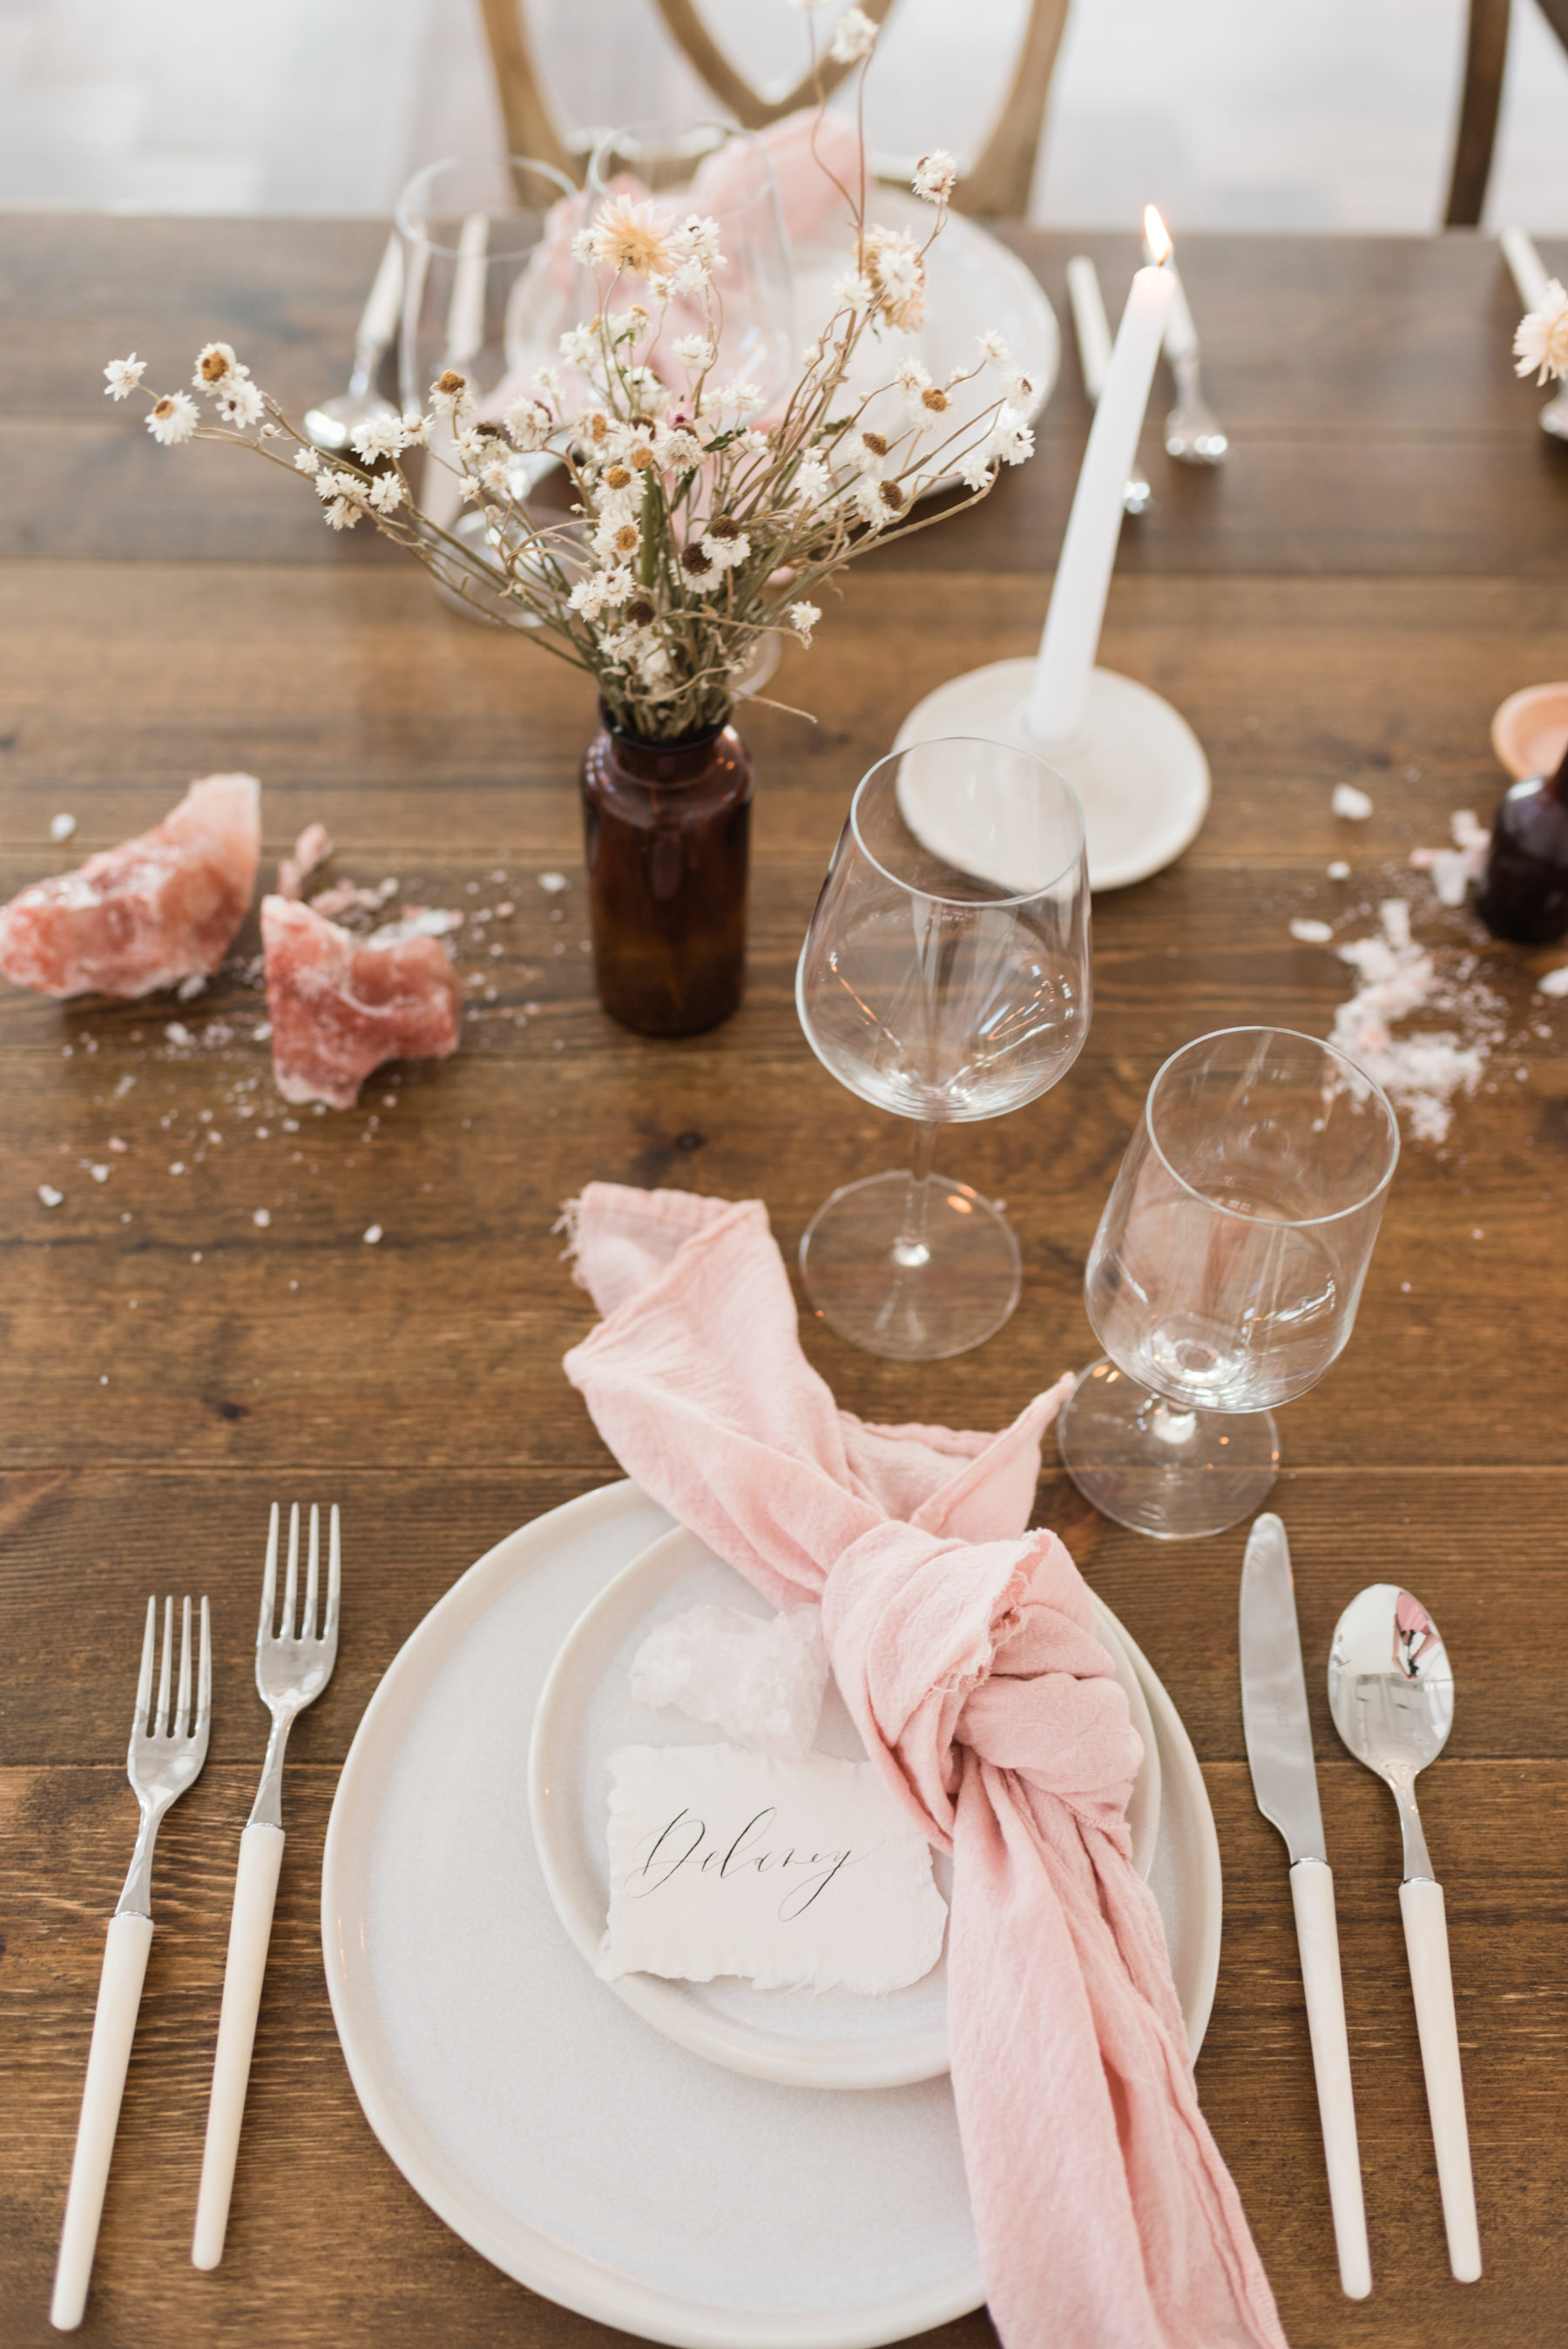 Organic Blush Wedding Inspiration captured by Mandy Liz Photography